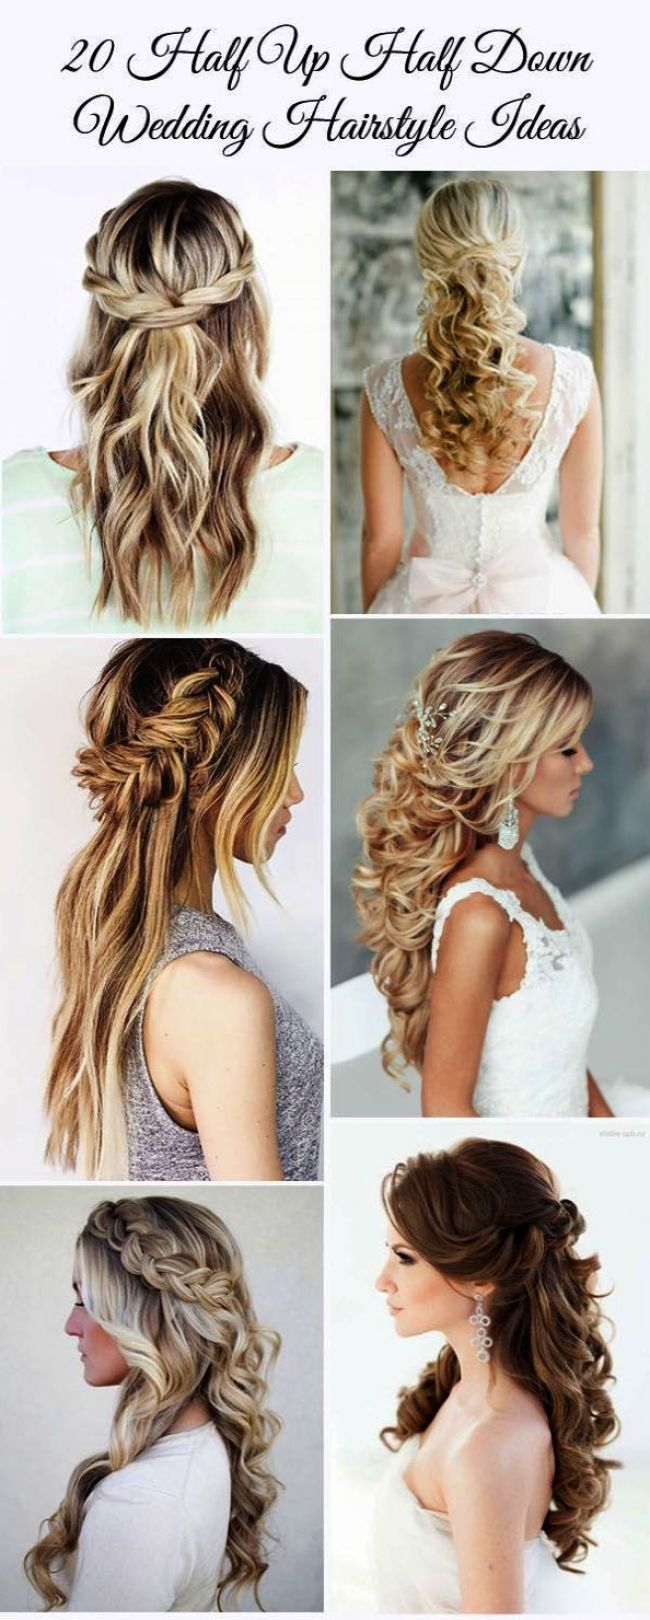 Stunning Wedding Hairstyles With Braids And Veil Follow Hairstyles In 2018 Pinterest Wedding Hairstyles Wedding Hair Down And Romantic We Hair Styles Wedding Hair Down Wedding Hairstyles